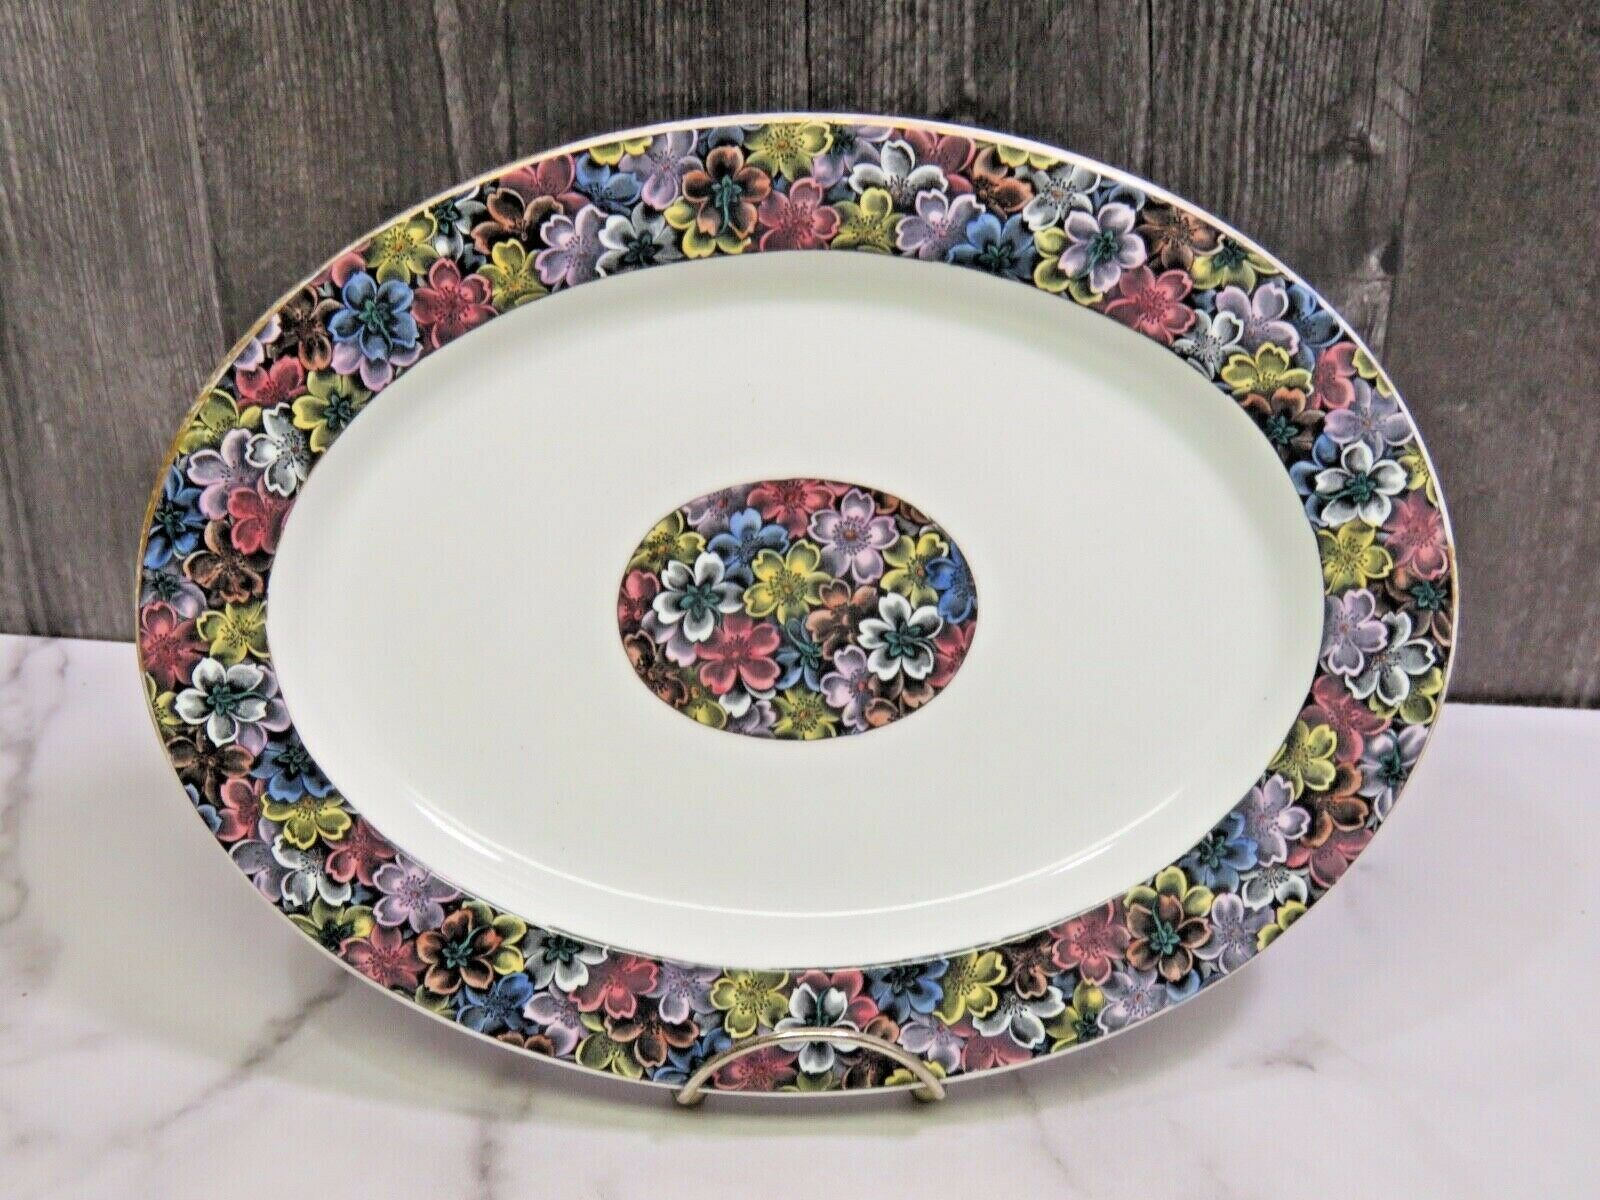 Primary image for Antique Royal Worcester for Tiffany & Co Imari Floral Oval Platter 11 5/8""